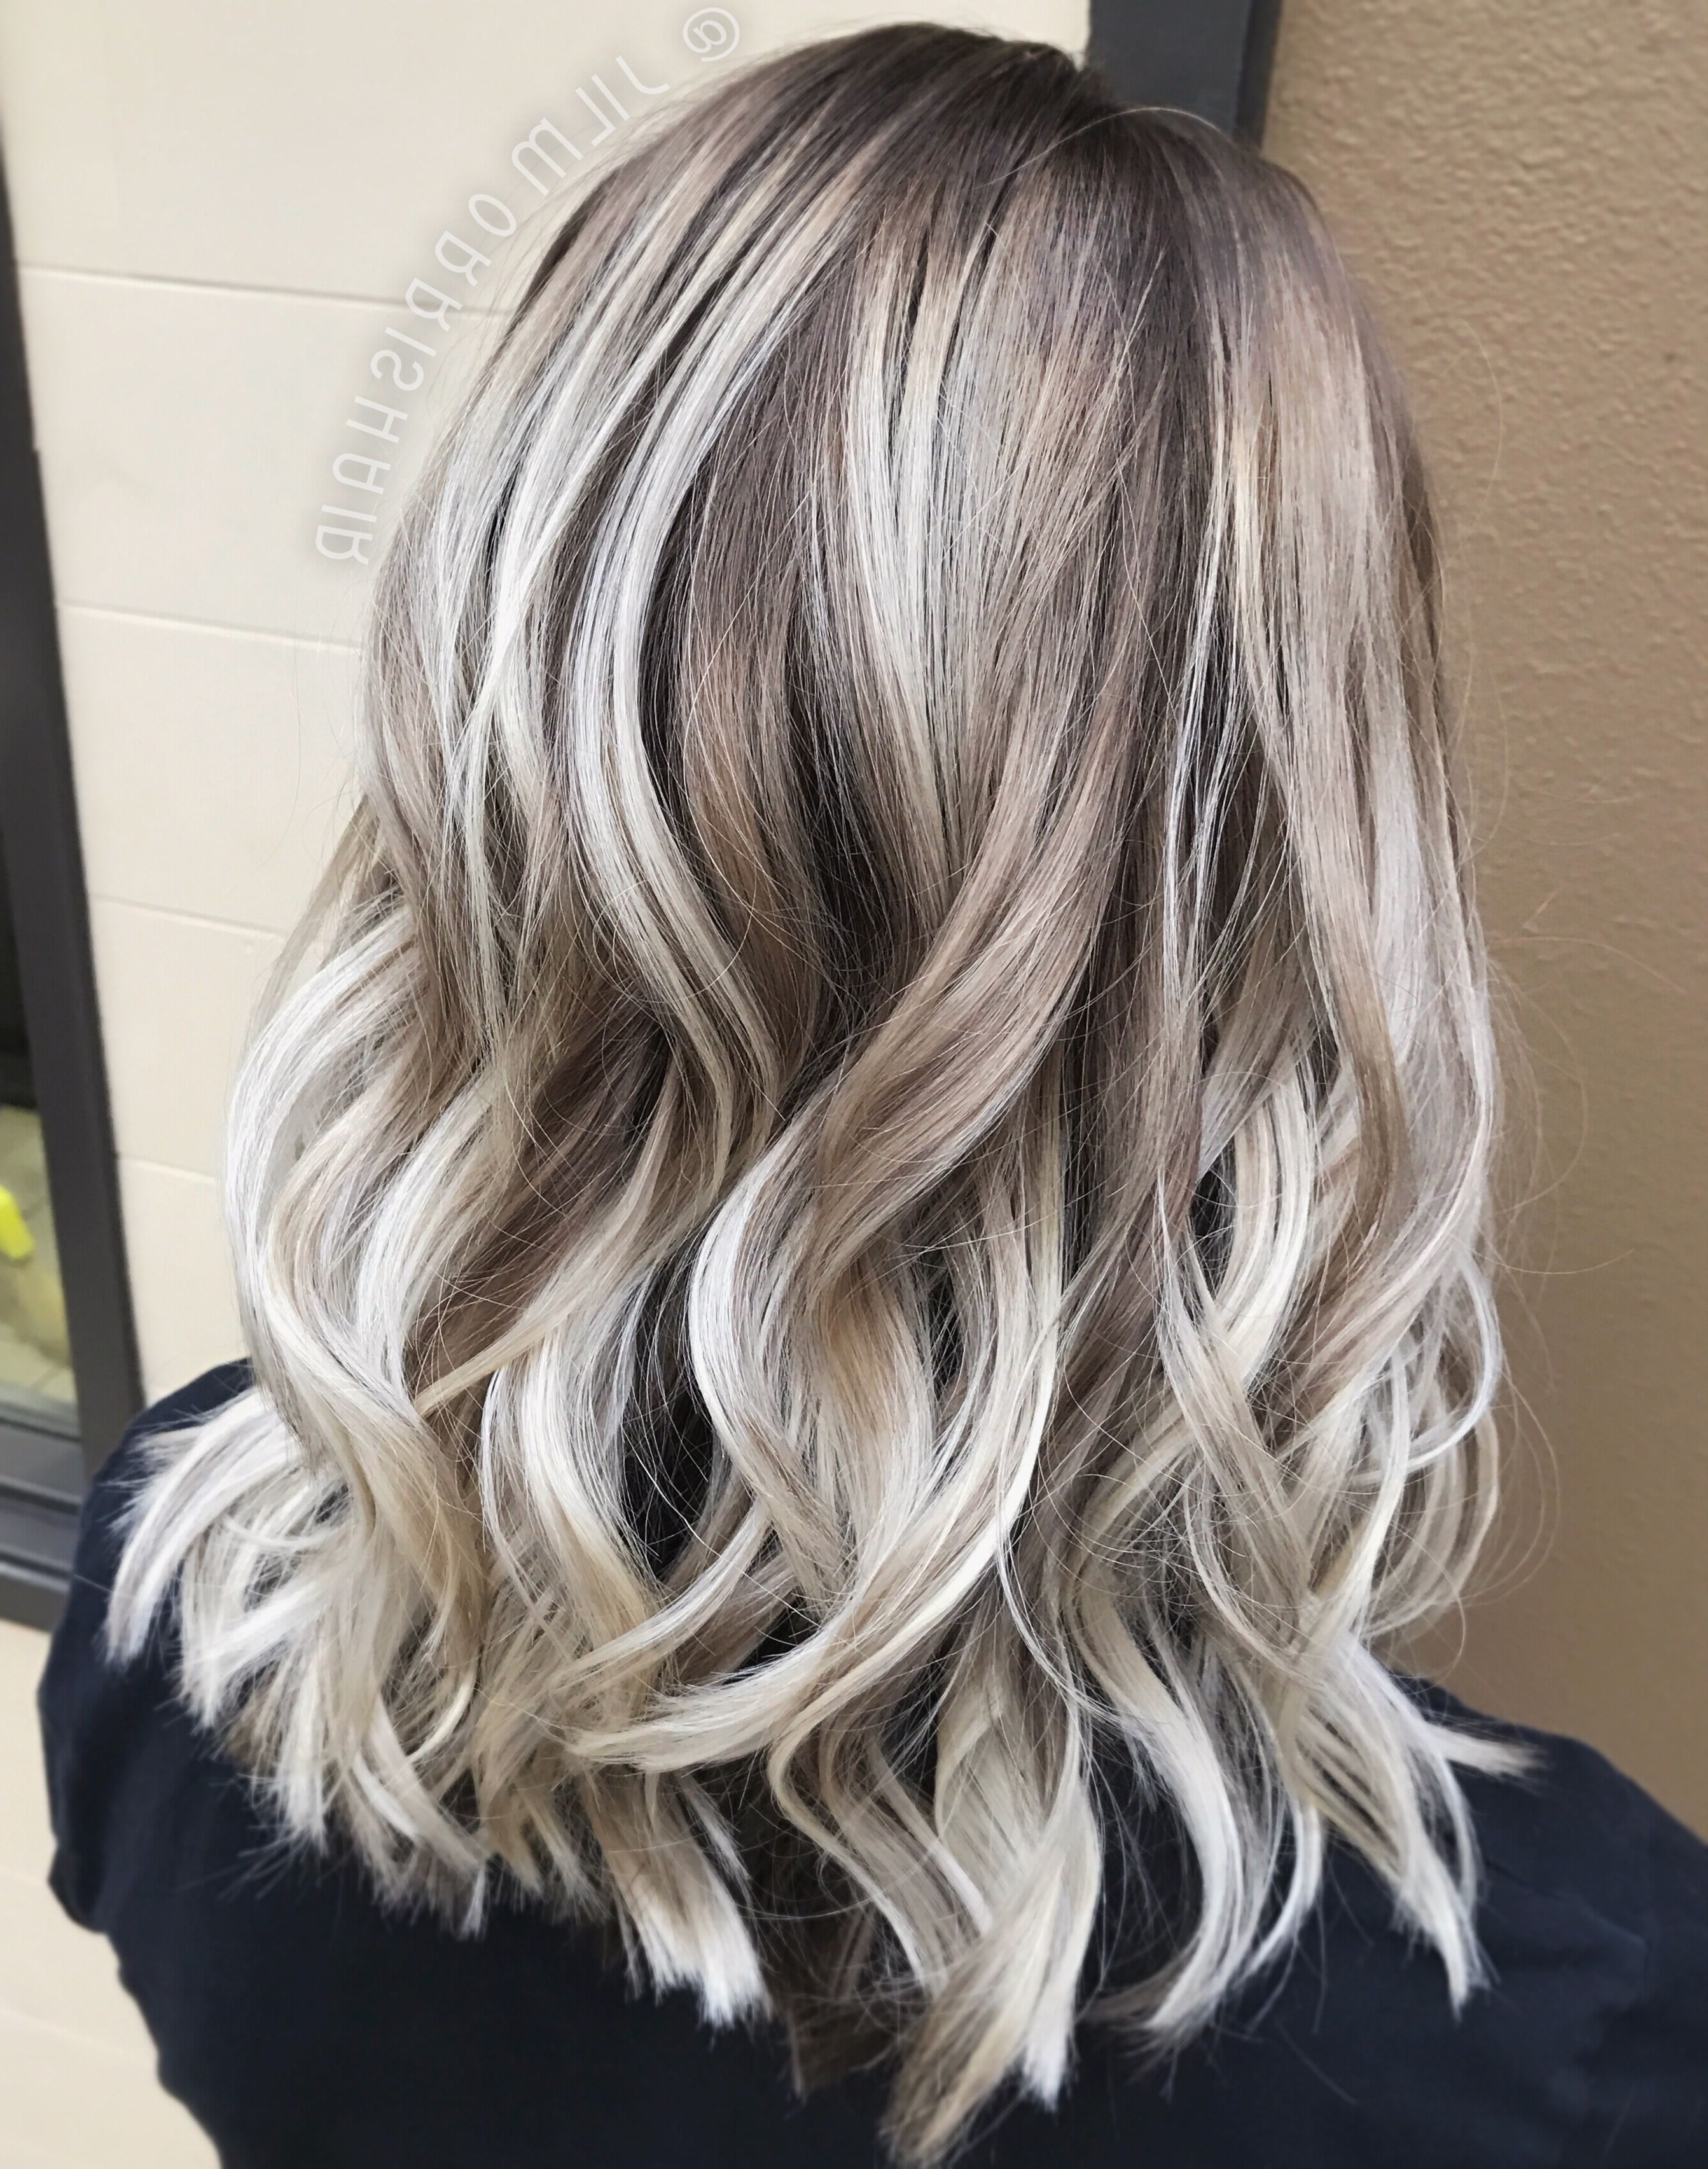 White Ash Blonde Balayage, Shadow Root, Curls In A Textured Lob Pertaining To 2017 Long Blond Ponytail Hairstyles With Bump And Sparkling Clip (View 19 of 20)